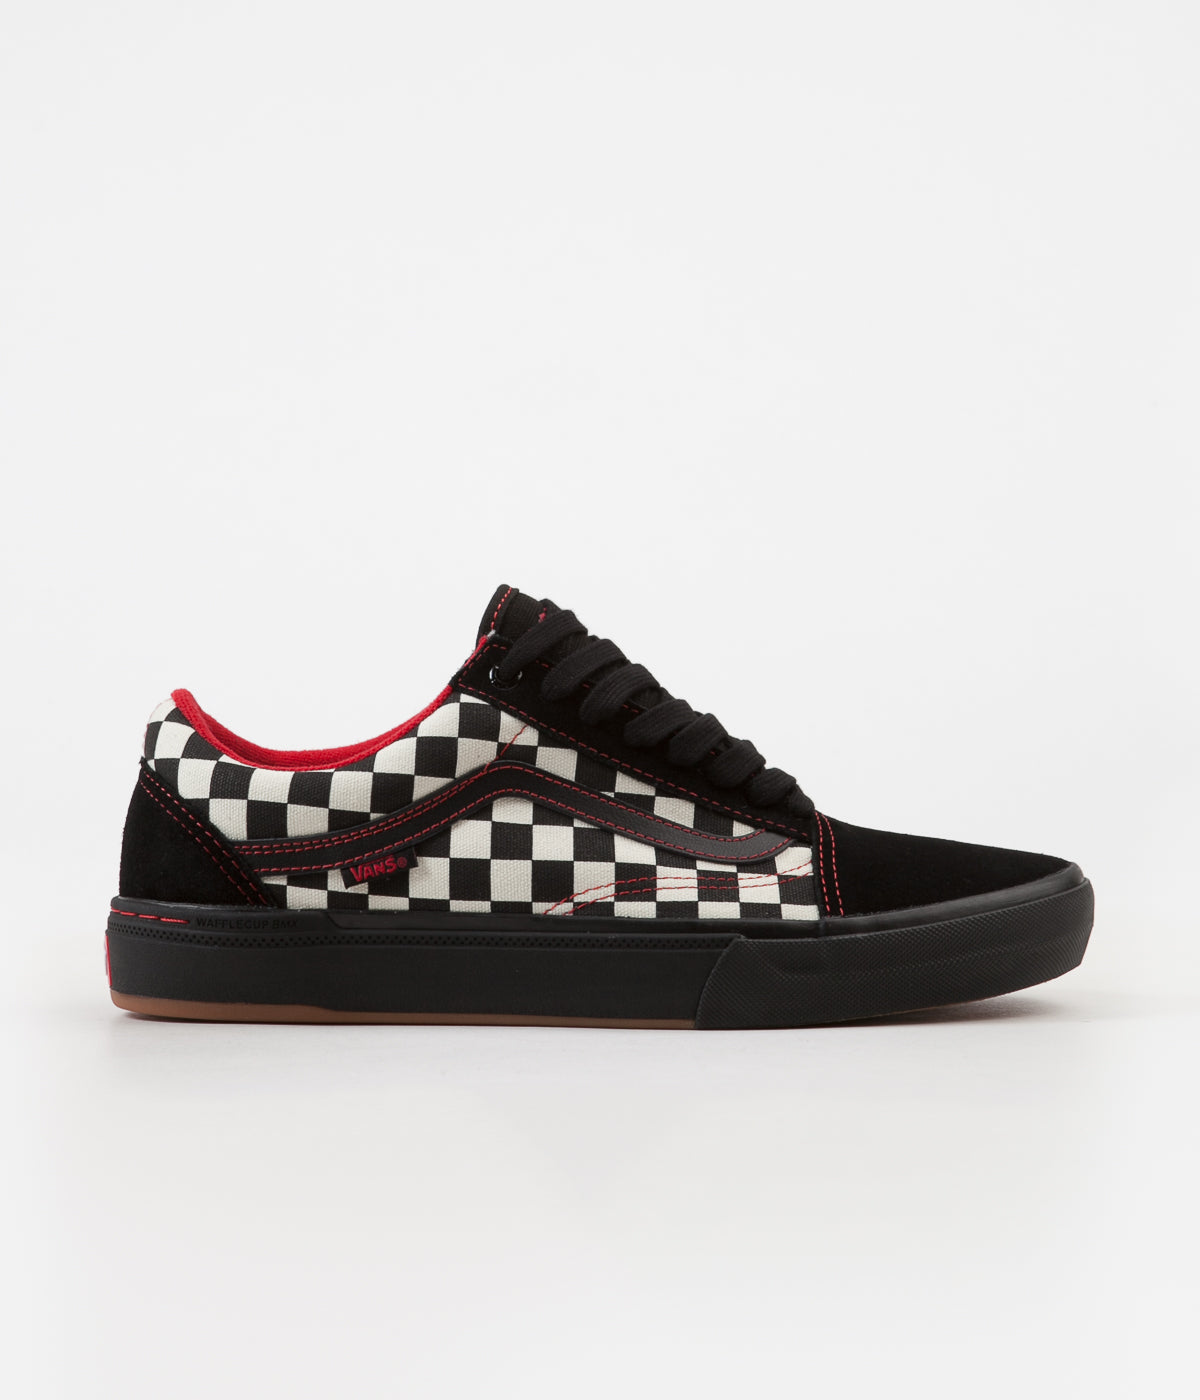 5e0a7843a29 Vans Old Skool Pro BMX Shoes - (Kevin Peraza) Black   Checkerboard ...